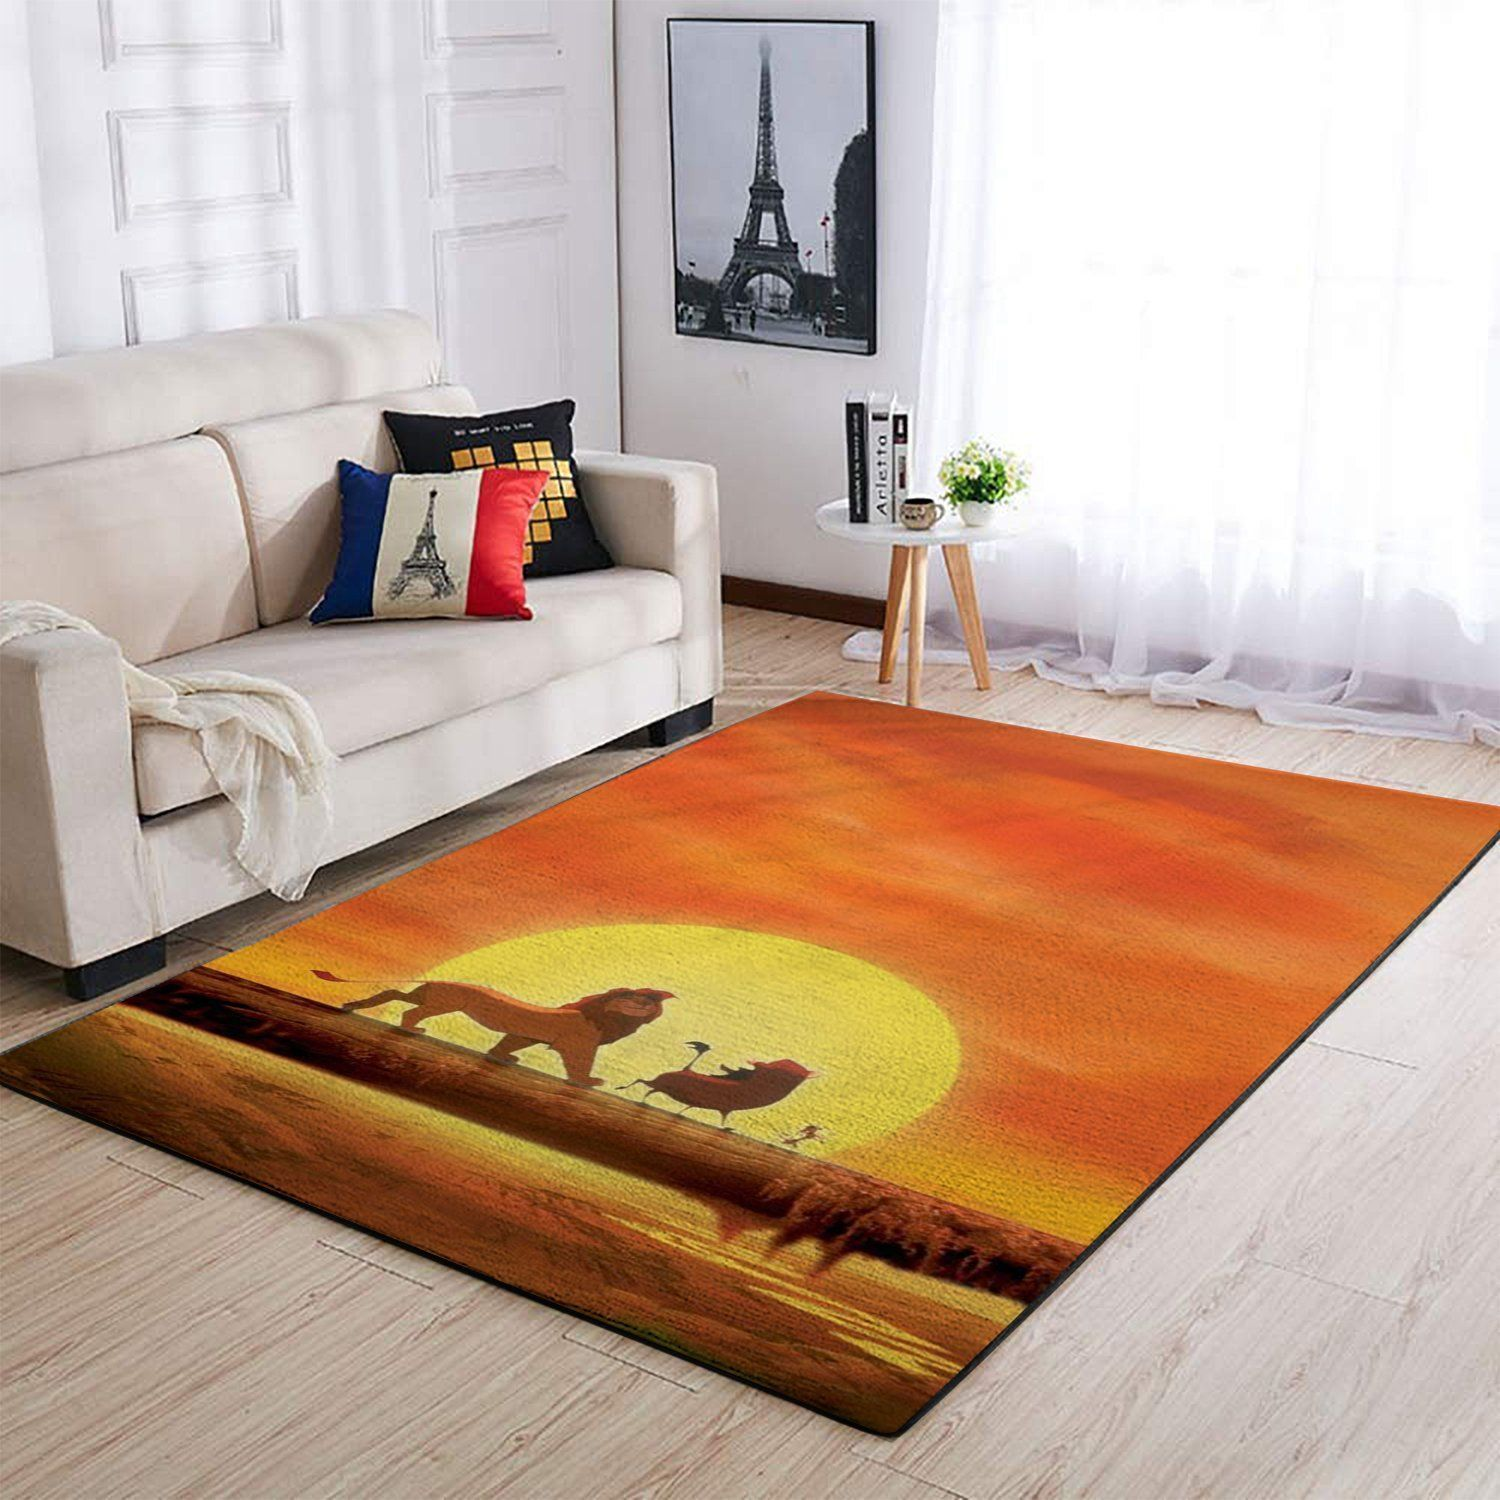 The Lion King Area Rugs, Disney Movie Living Room Carpet, Custom Floor Decor 1